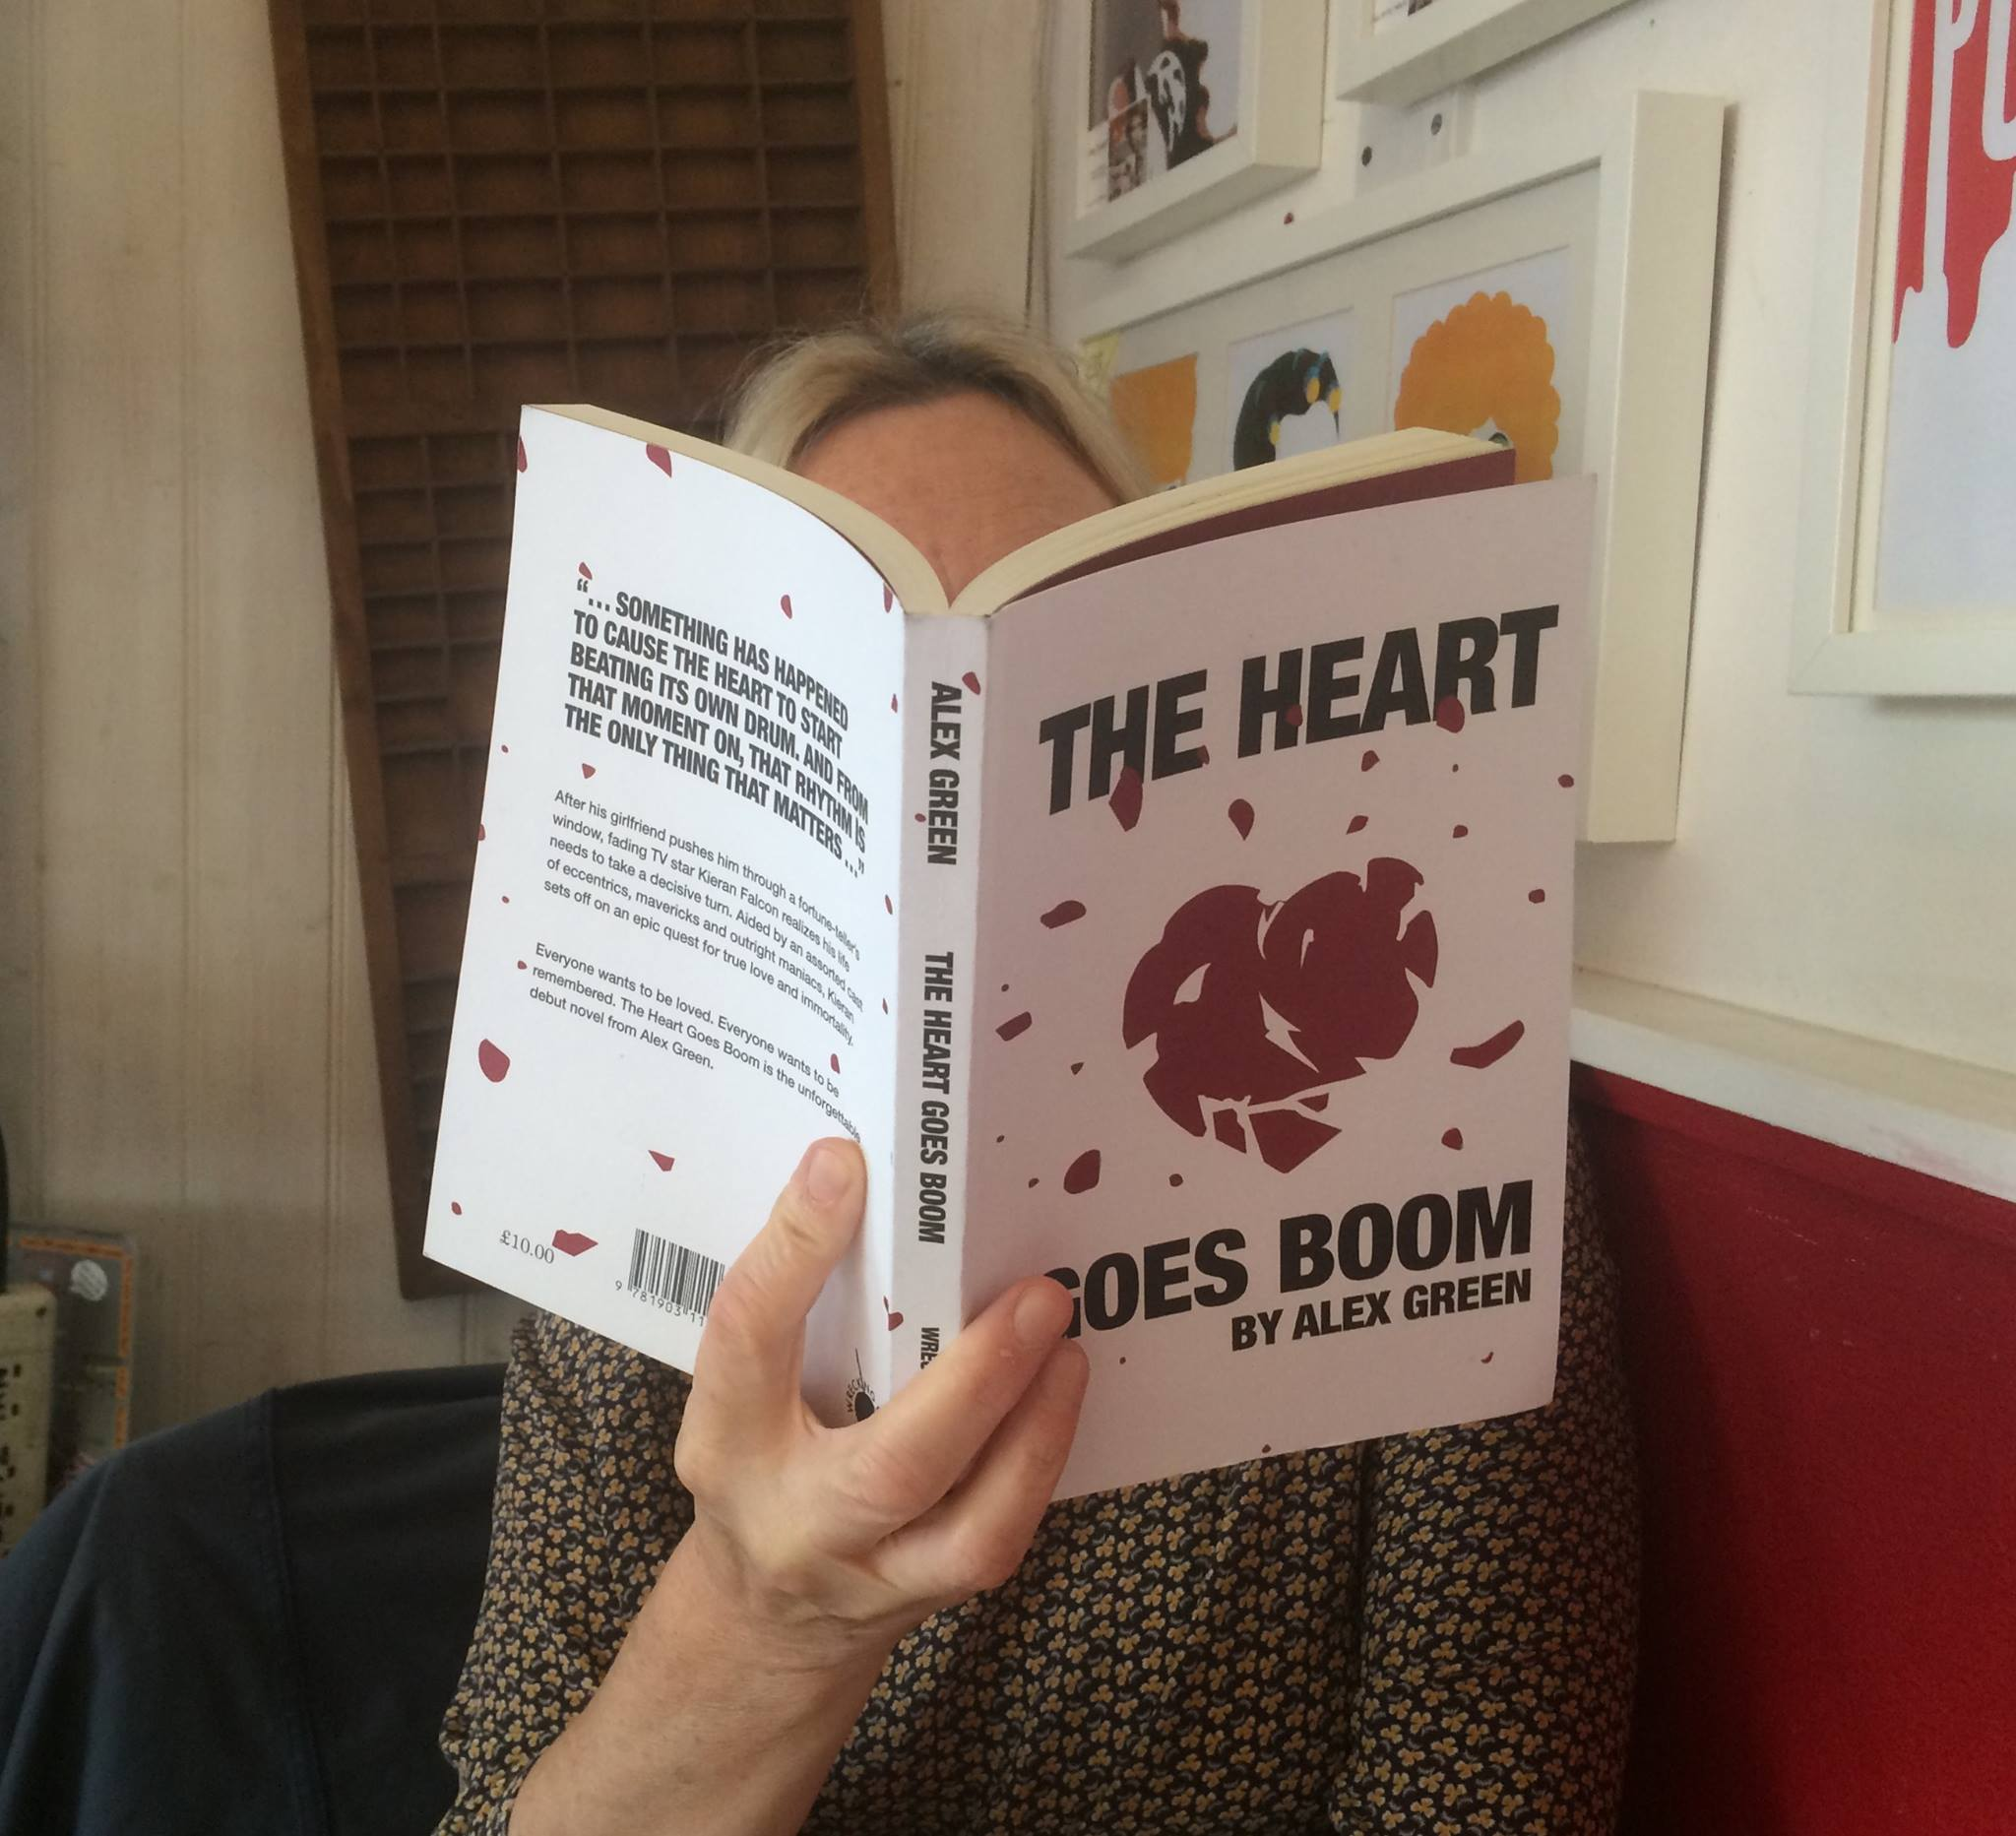 Alex Green To Read From The Heart Goes Boom At A Great Good Place For Books